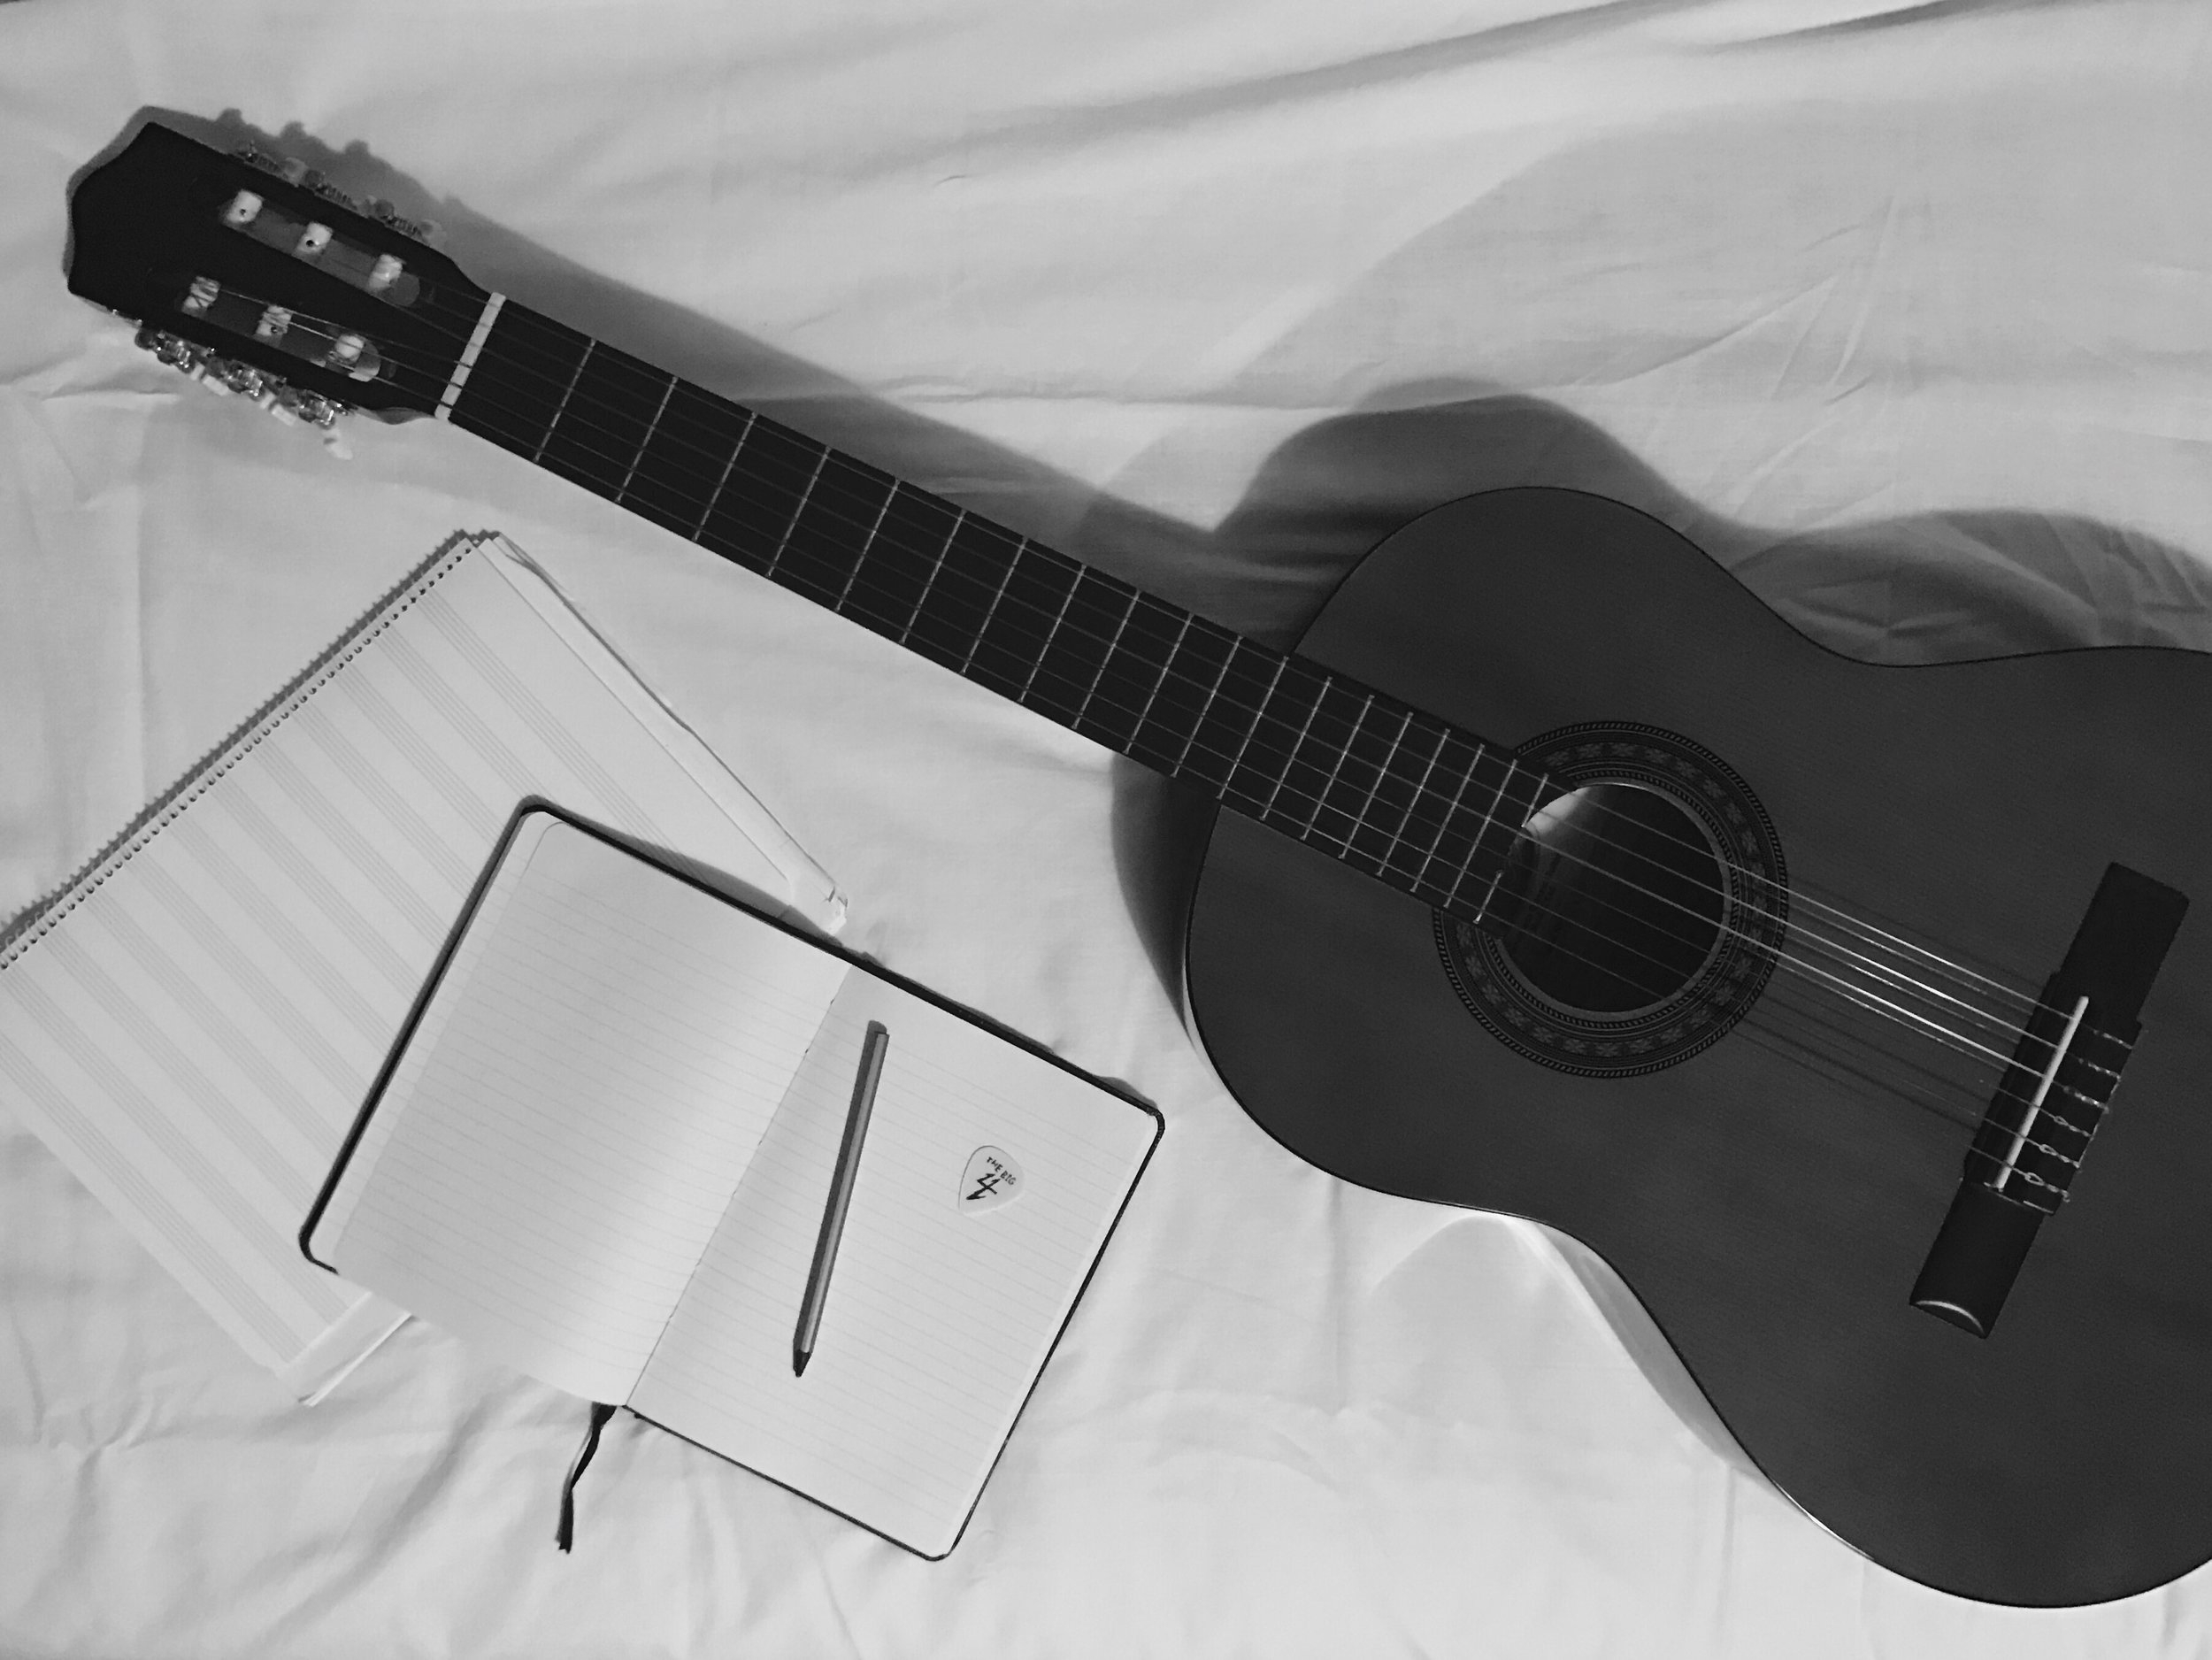 guitar music lyrics song songs songwriting songwriter acoustic sheet notes